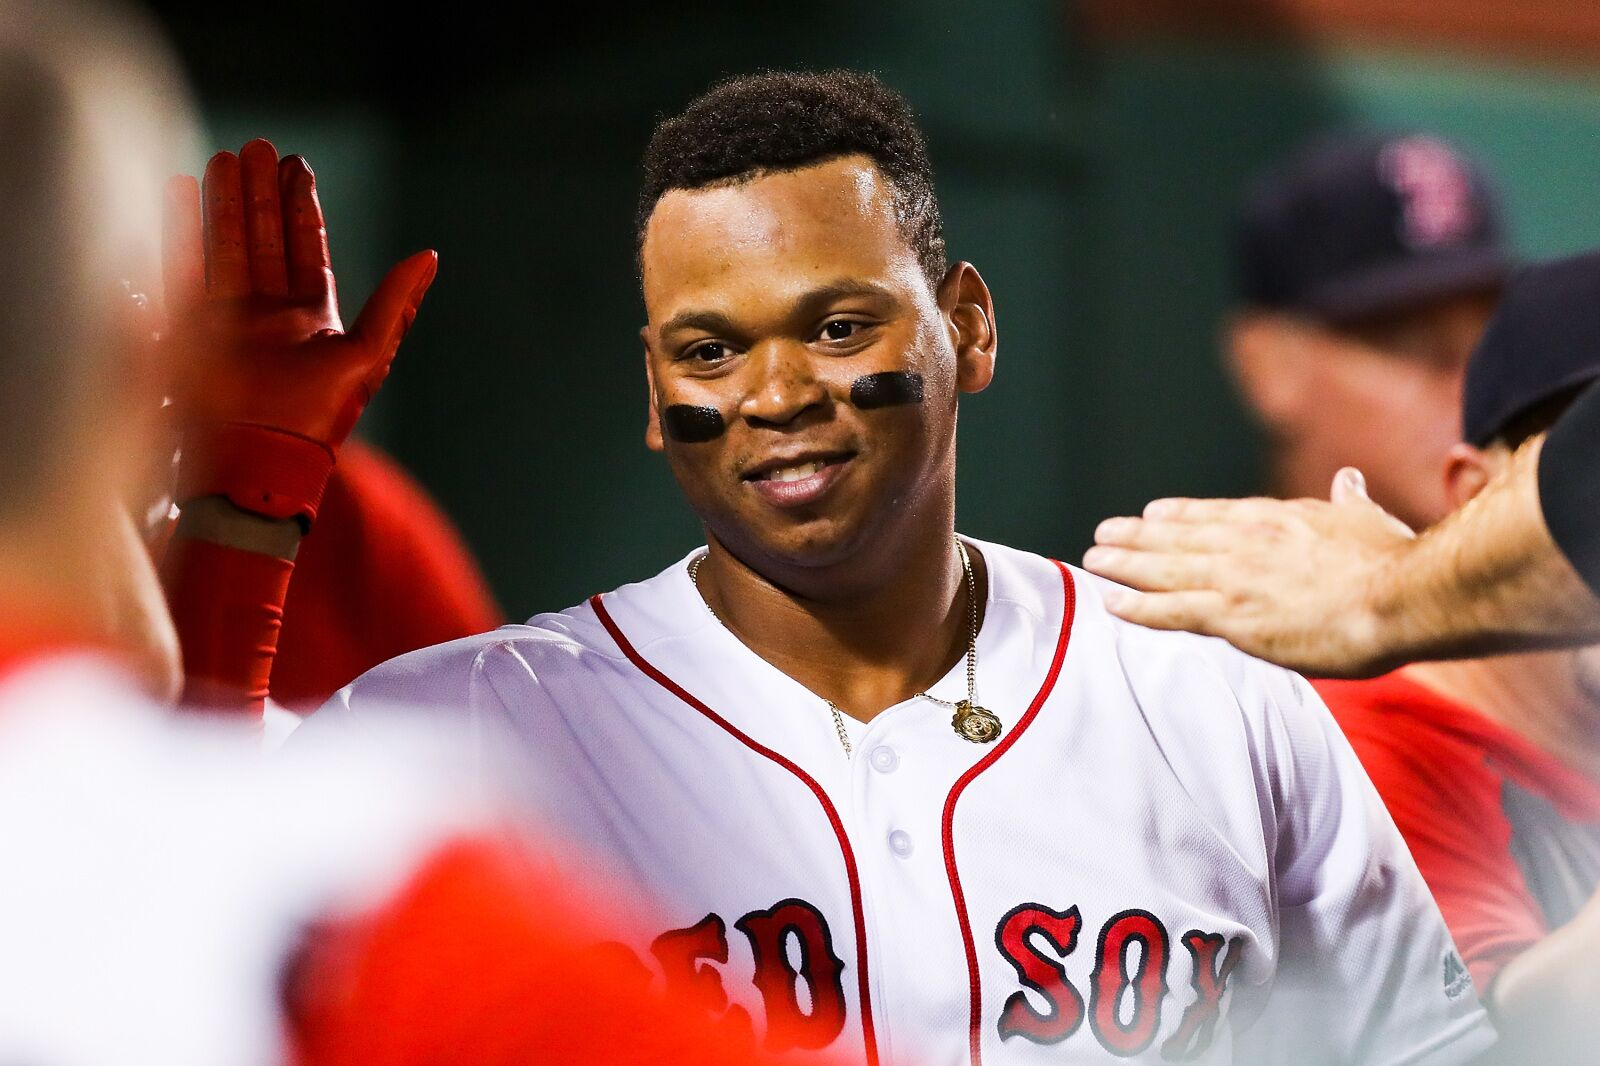 Red Sox third baseman Rafael Devers earns AL Player of the Week